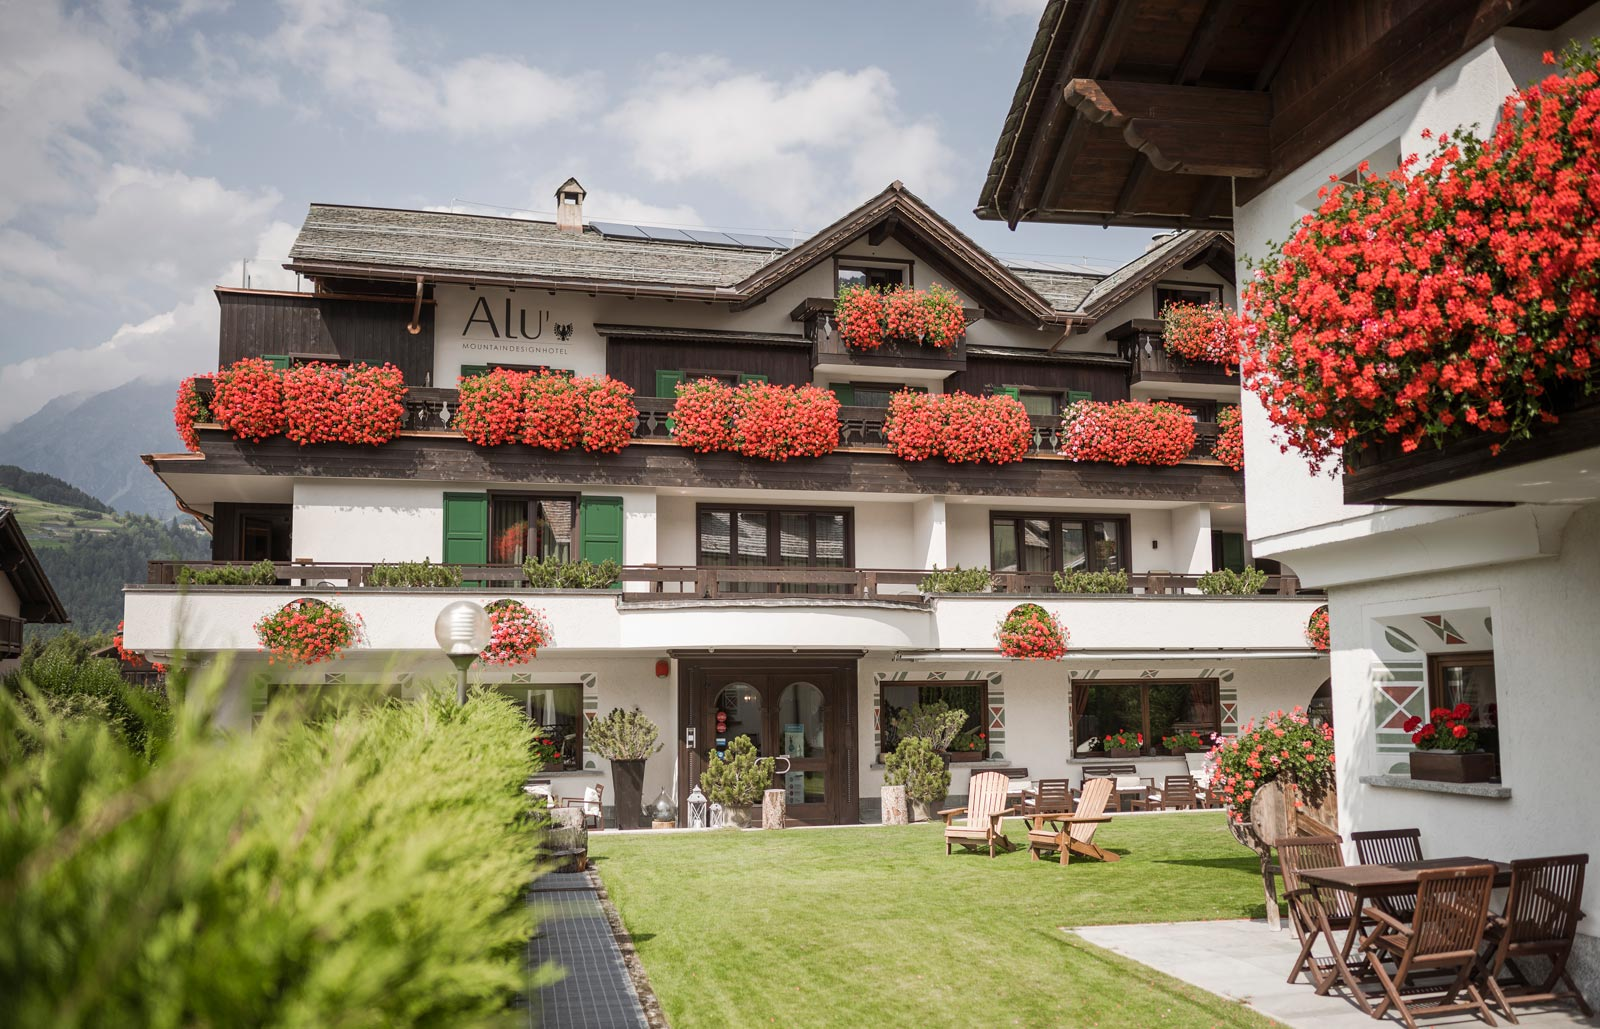 Sitting room corner with leather armchairs and chandelier at Hotel Alù a Bormio